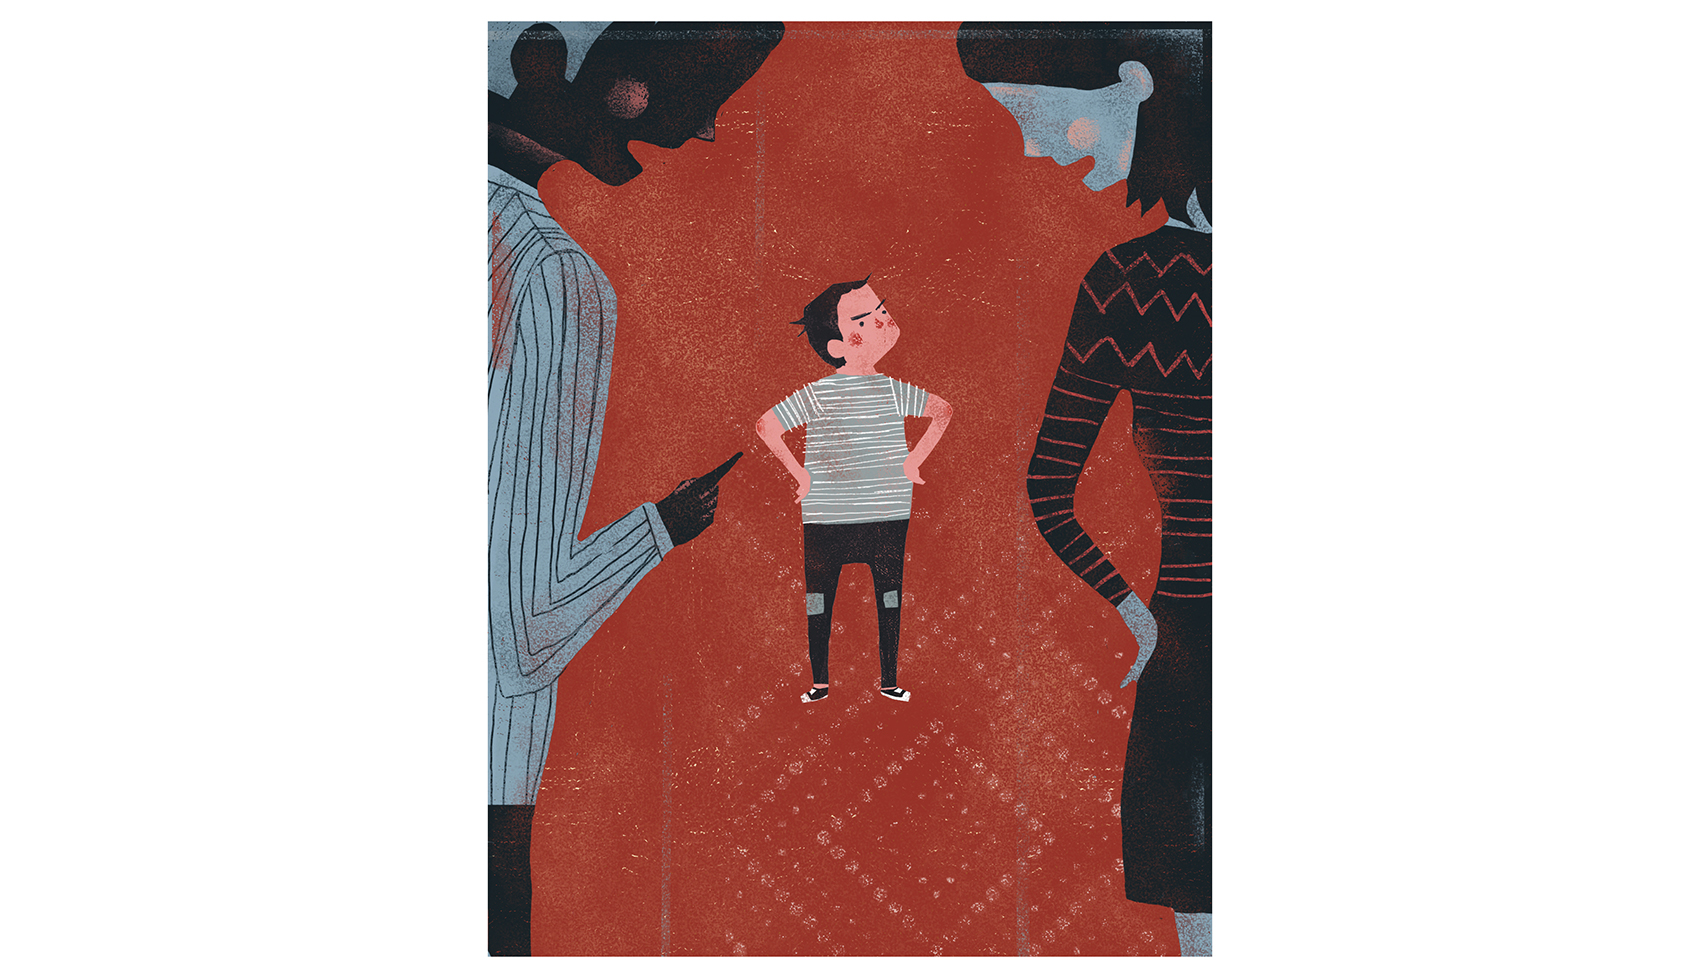 Illustration: Parents disciplining child